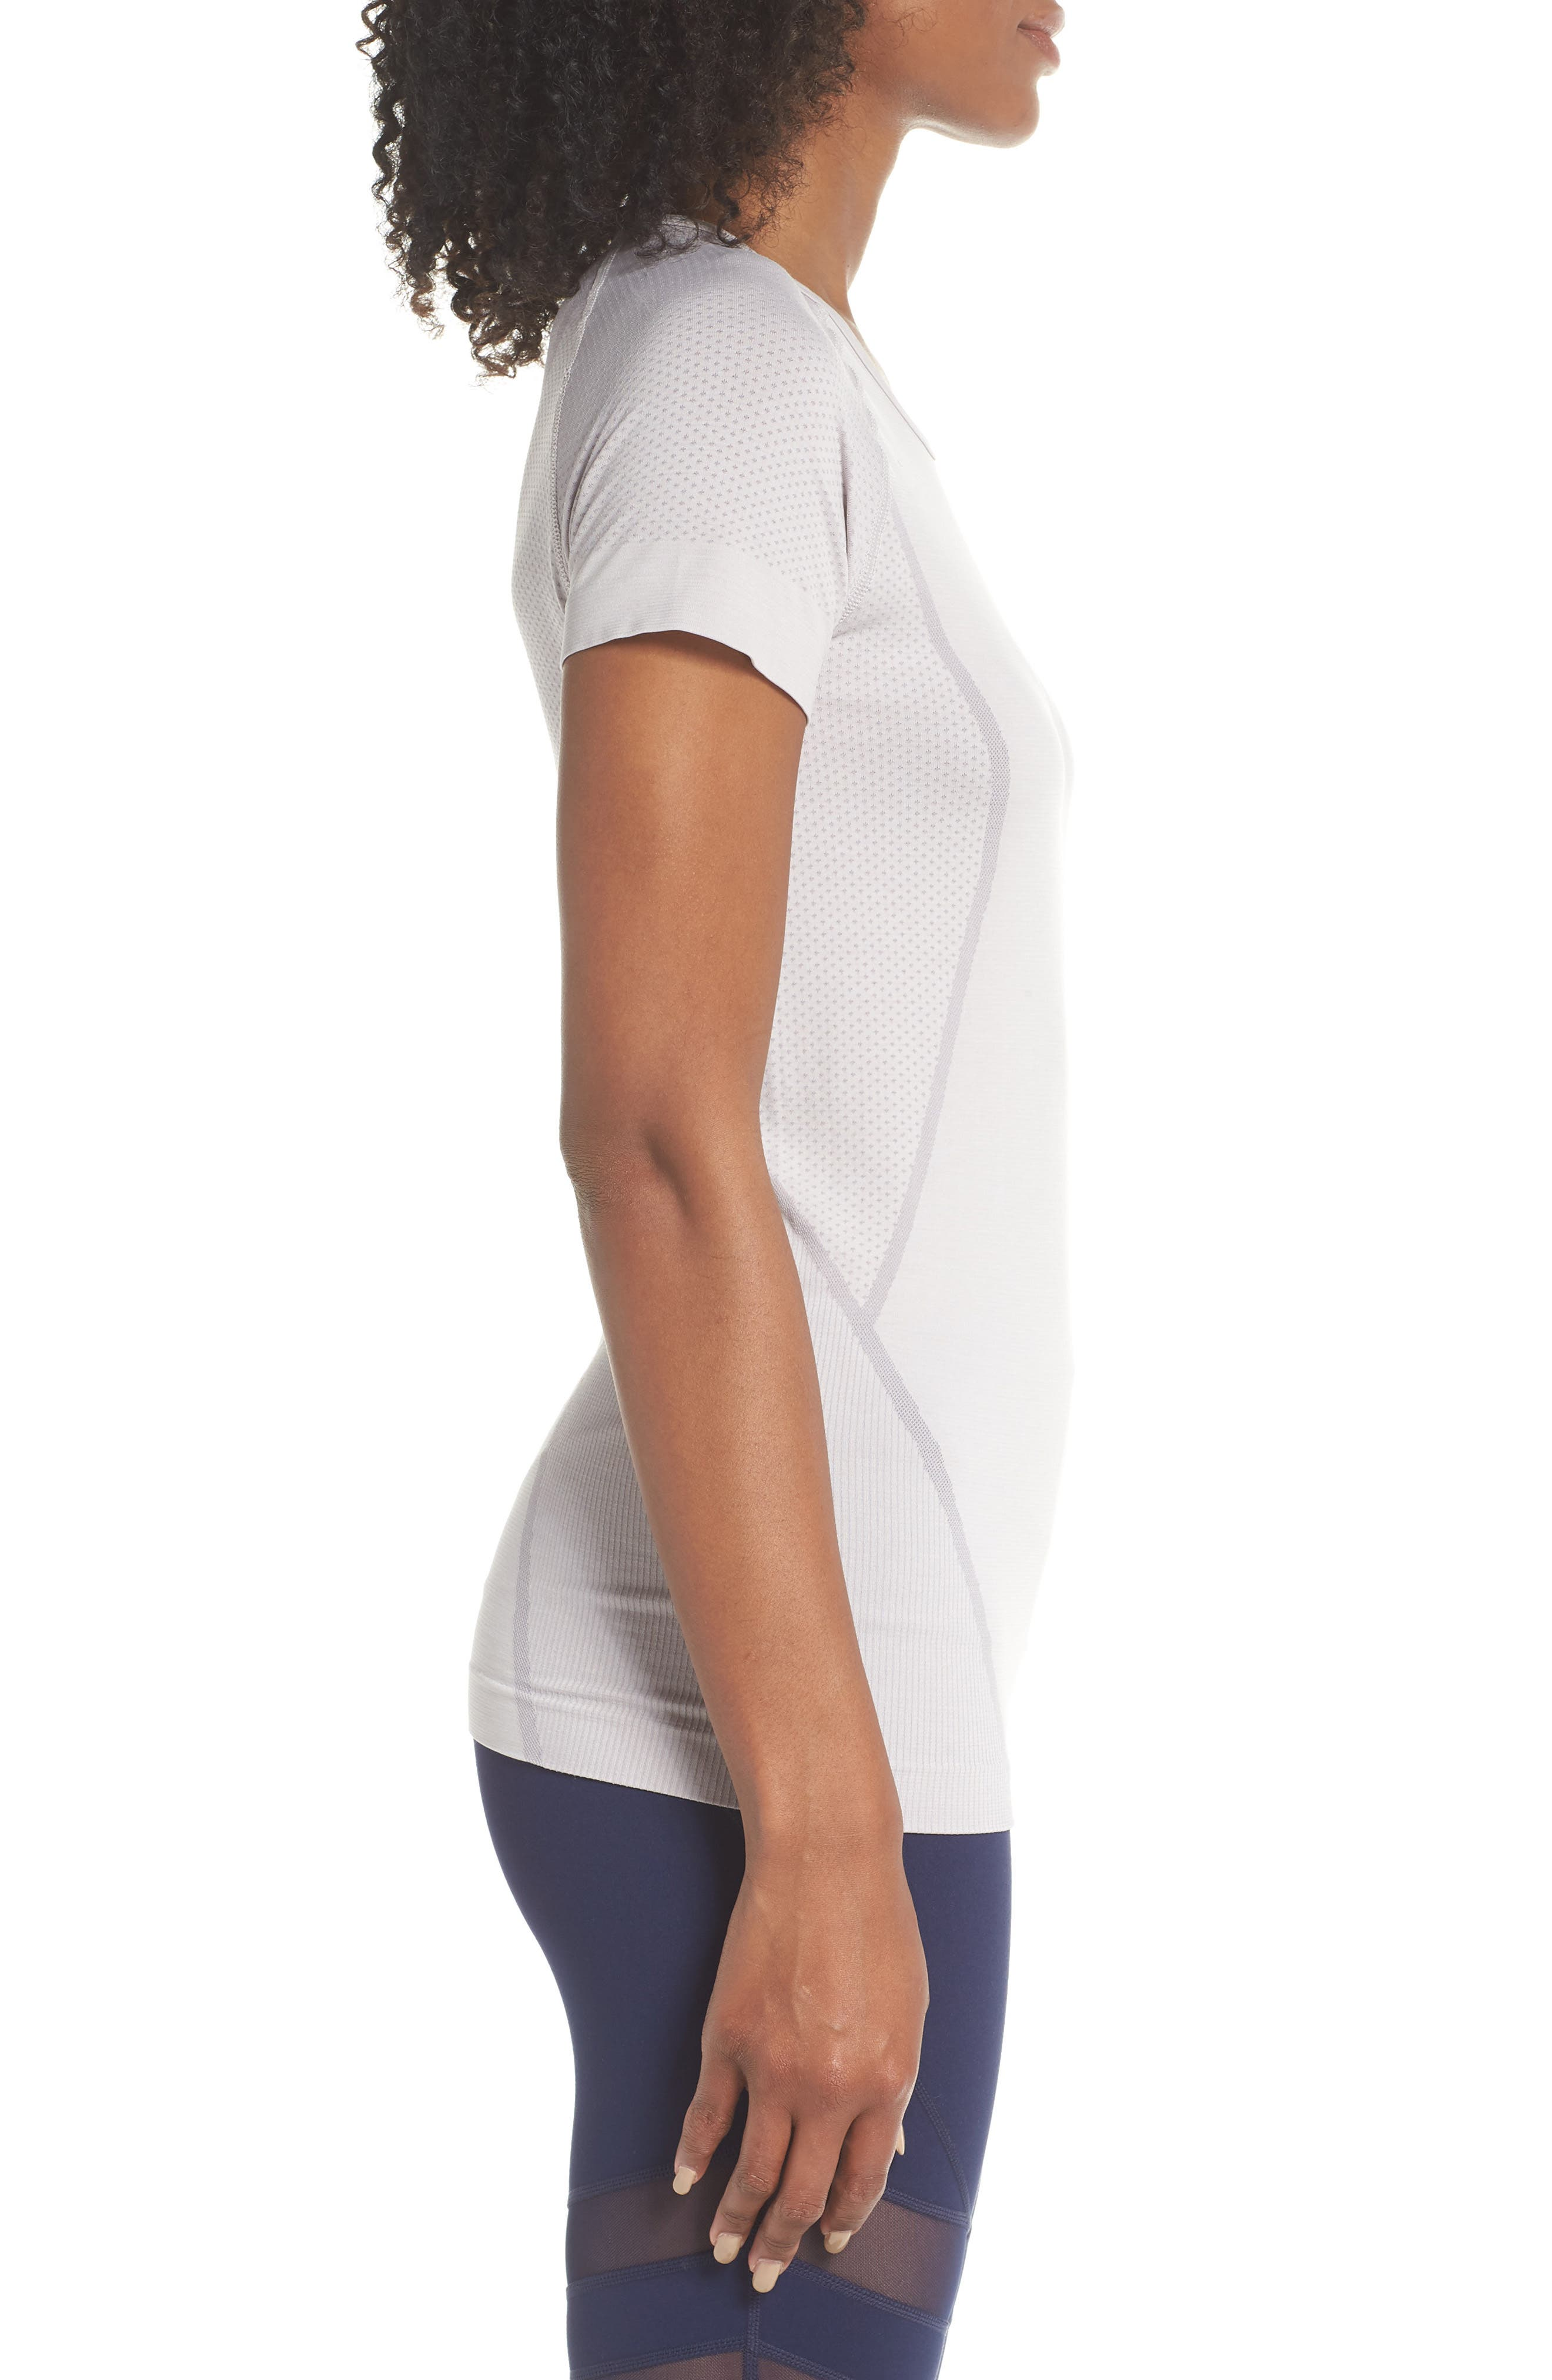 ZELLA, Stand Out Seamless Training Tee, Alternate thumbnail 4, color, 050